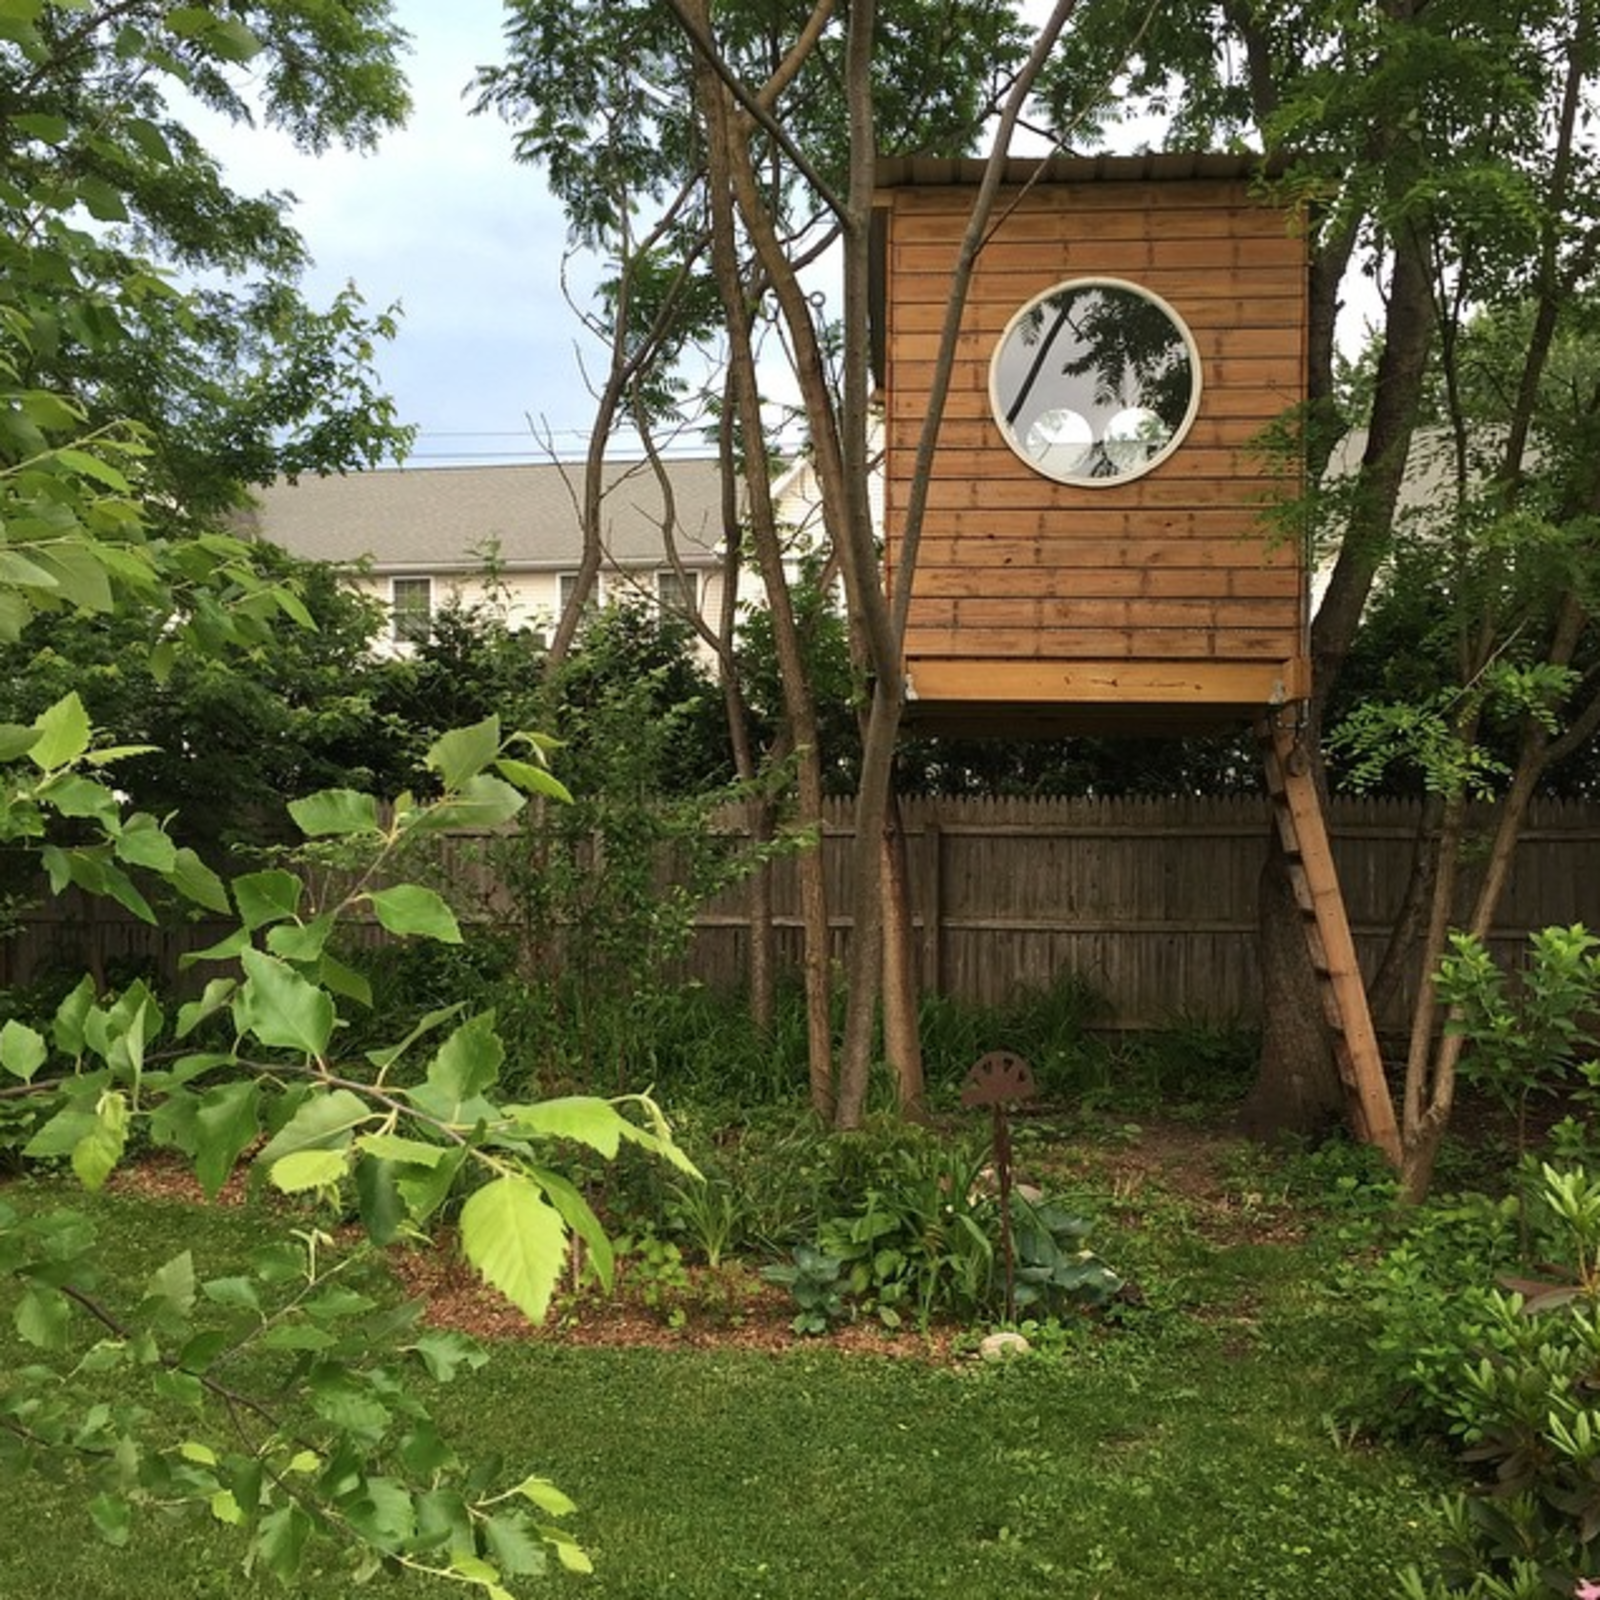 backyard tree house with circle picture window